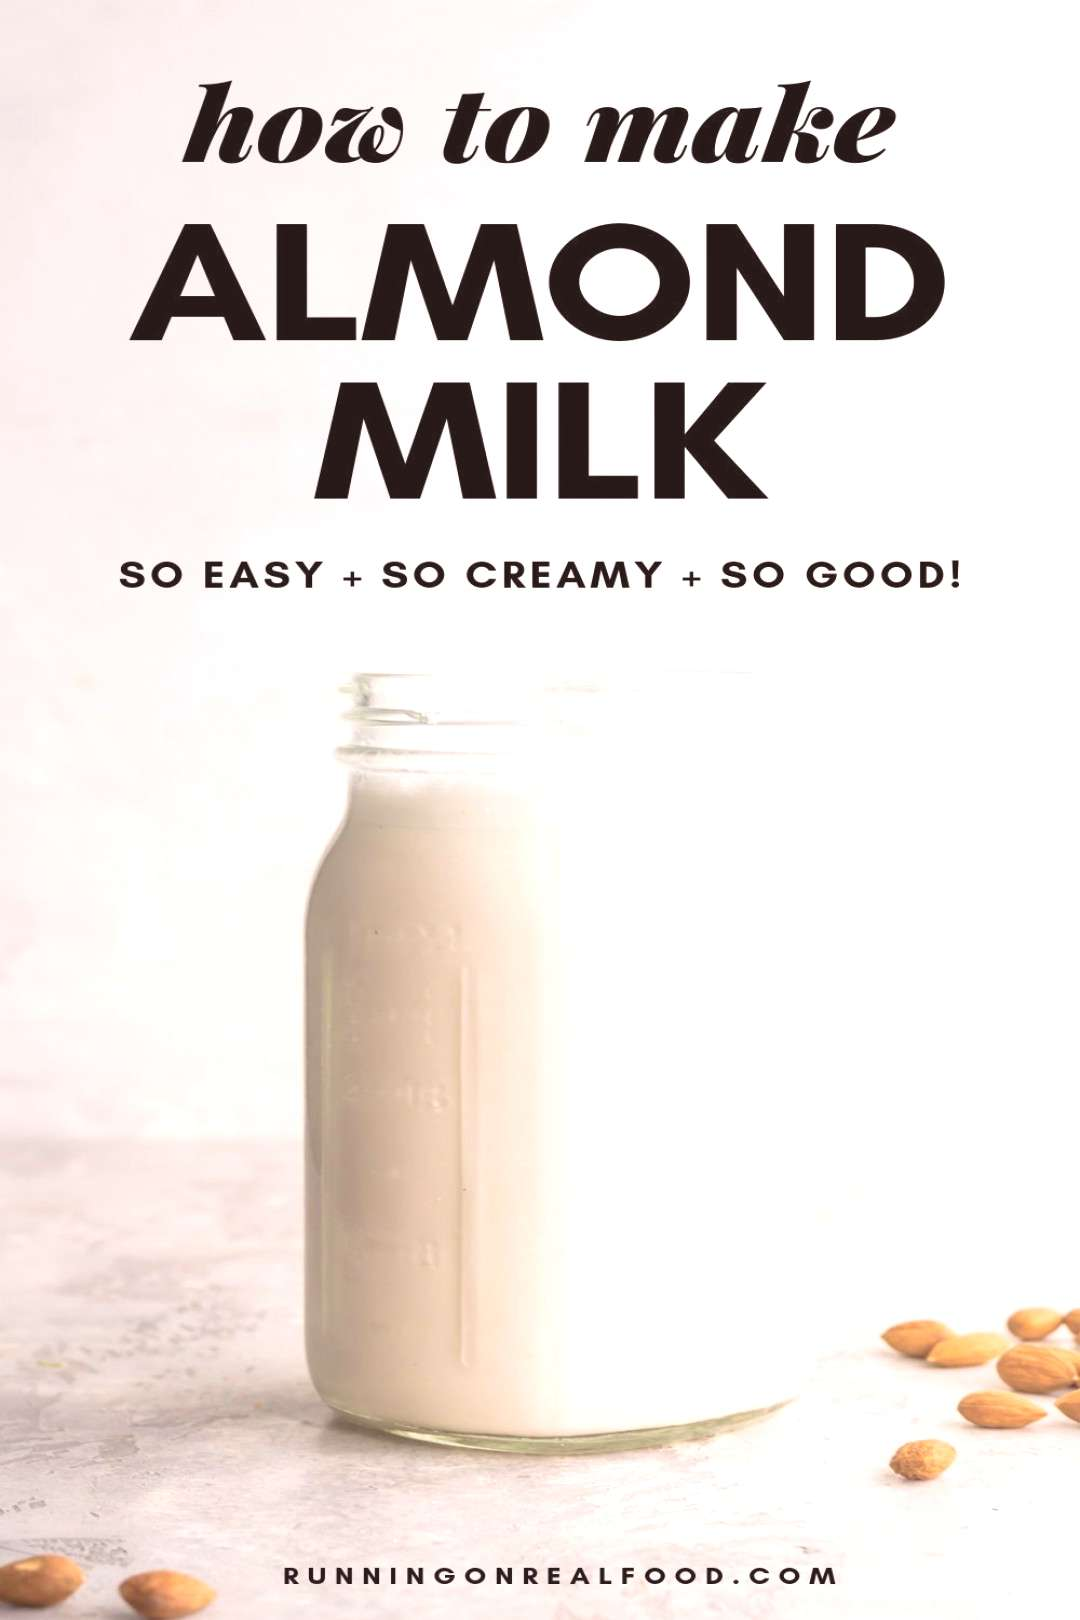 Have you ever wanted to try homemade almond milk? In this post, we'll go through how to make almo